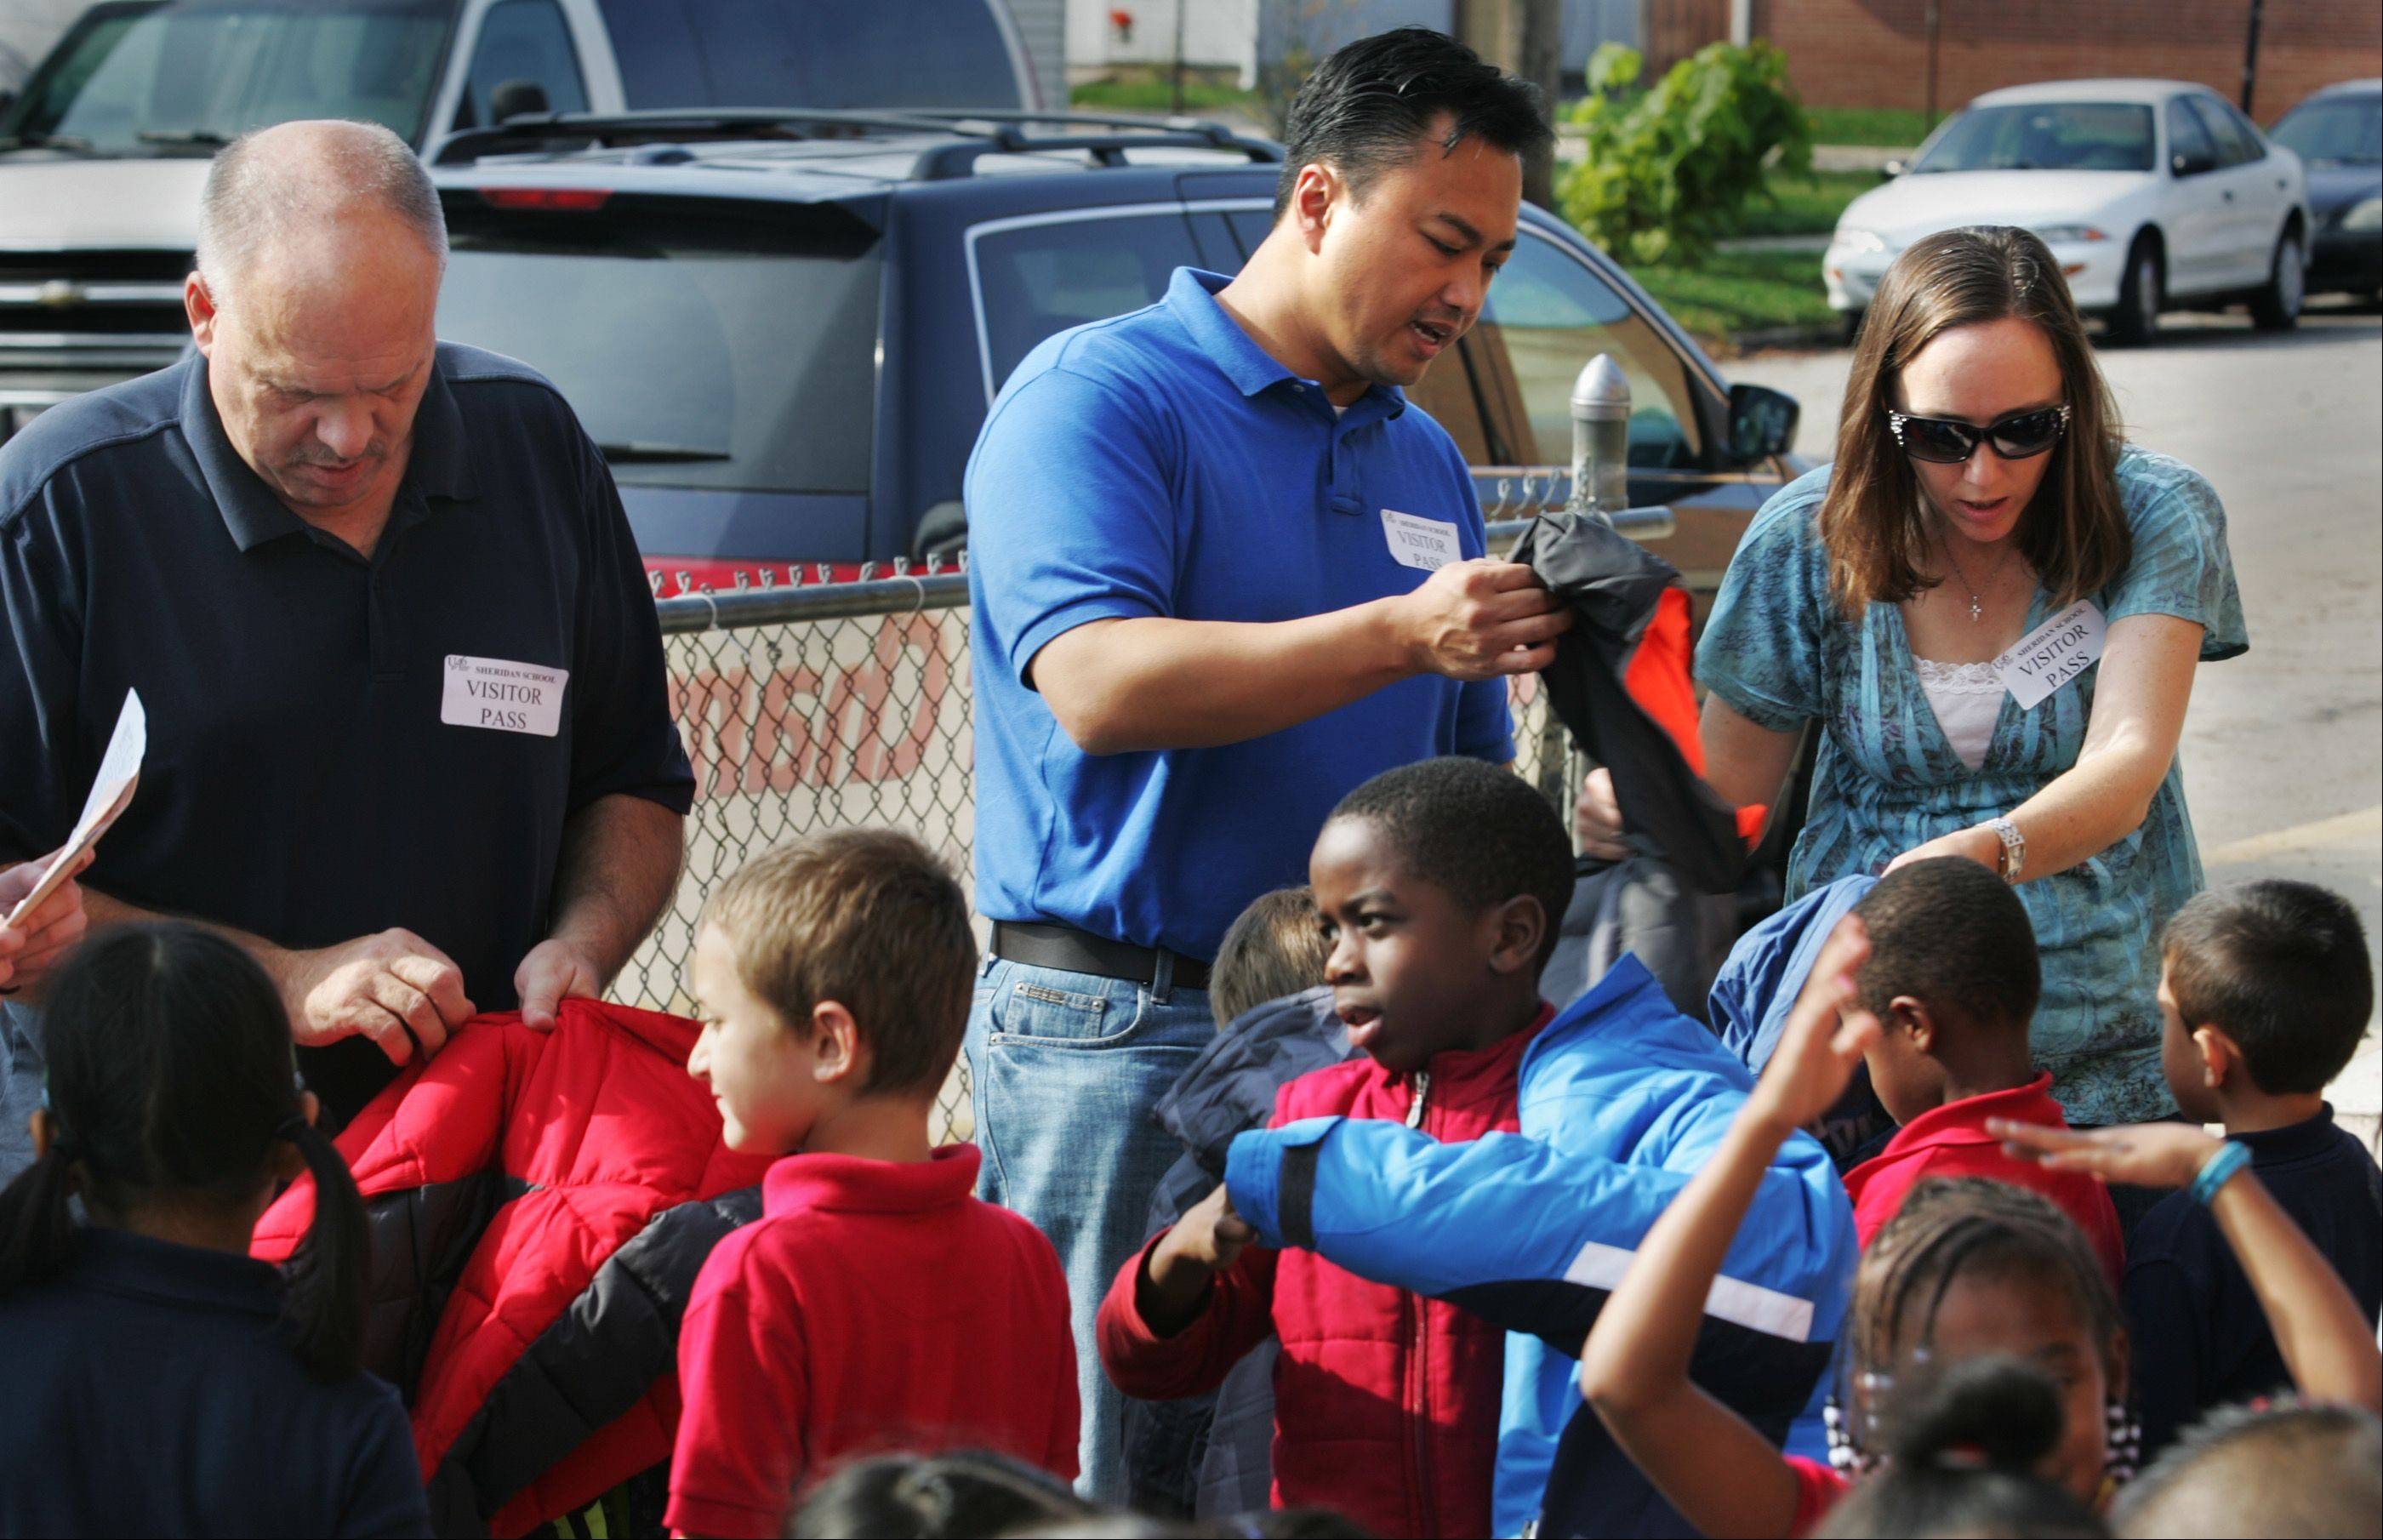 Al and Denise DeGuzman of Hoffman Estates, along with their neighbor Lee Crum, hand out new coats to a group of students at Sheridan Elementary Wednesday in Elgin. The DeGuzmans, of Hoffman Estates, have organized an annual coat drive to help provide winter coats for kids at the school.